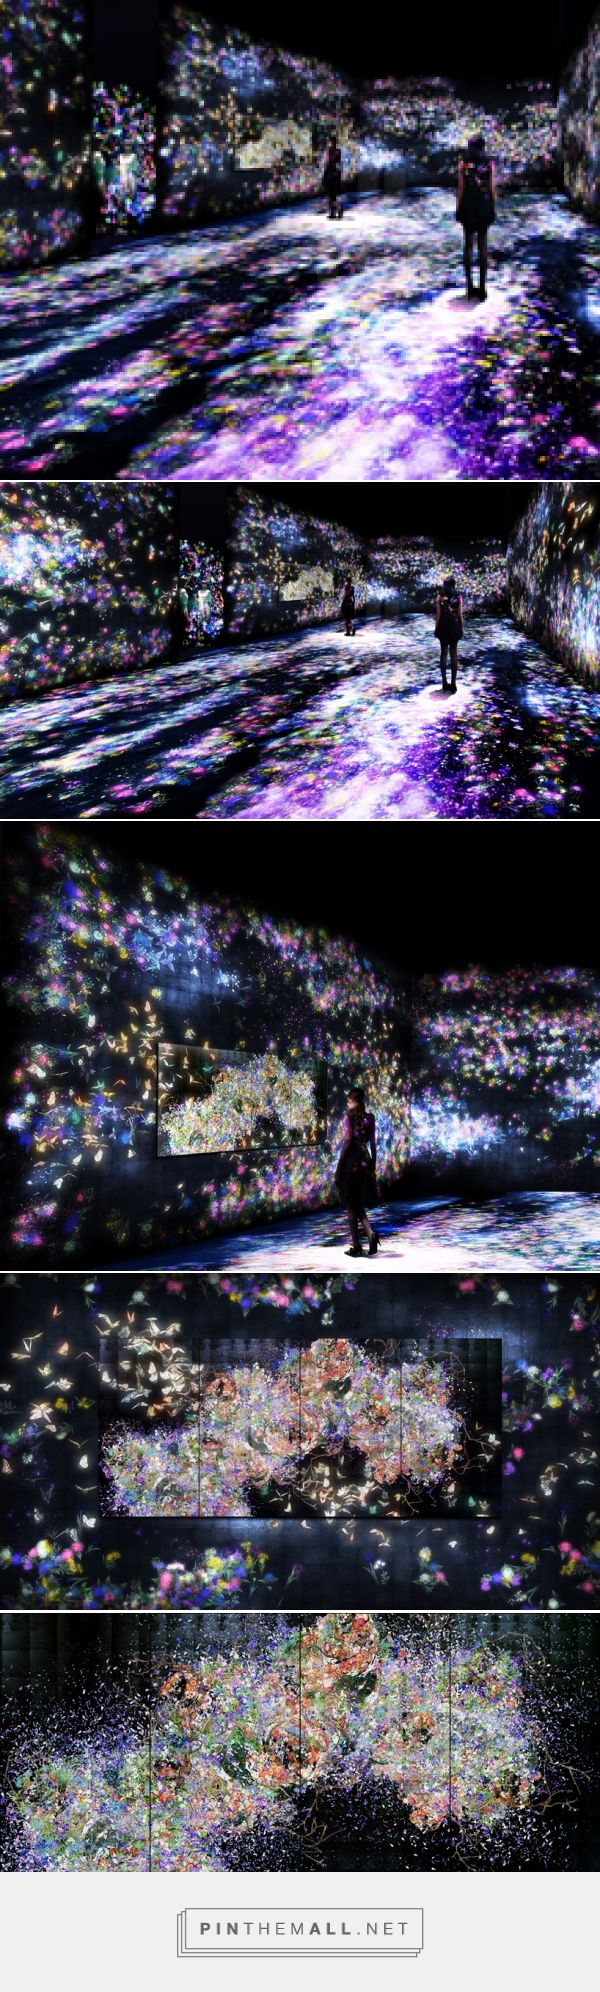 teamlab sends a flutter of butterflies beyond borders into saatchi gallery - created via http://pinthemall.net